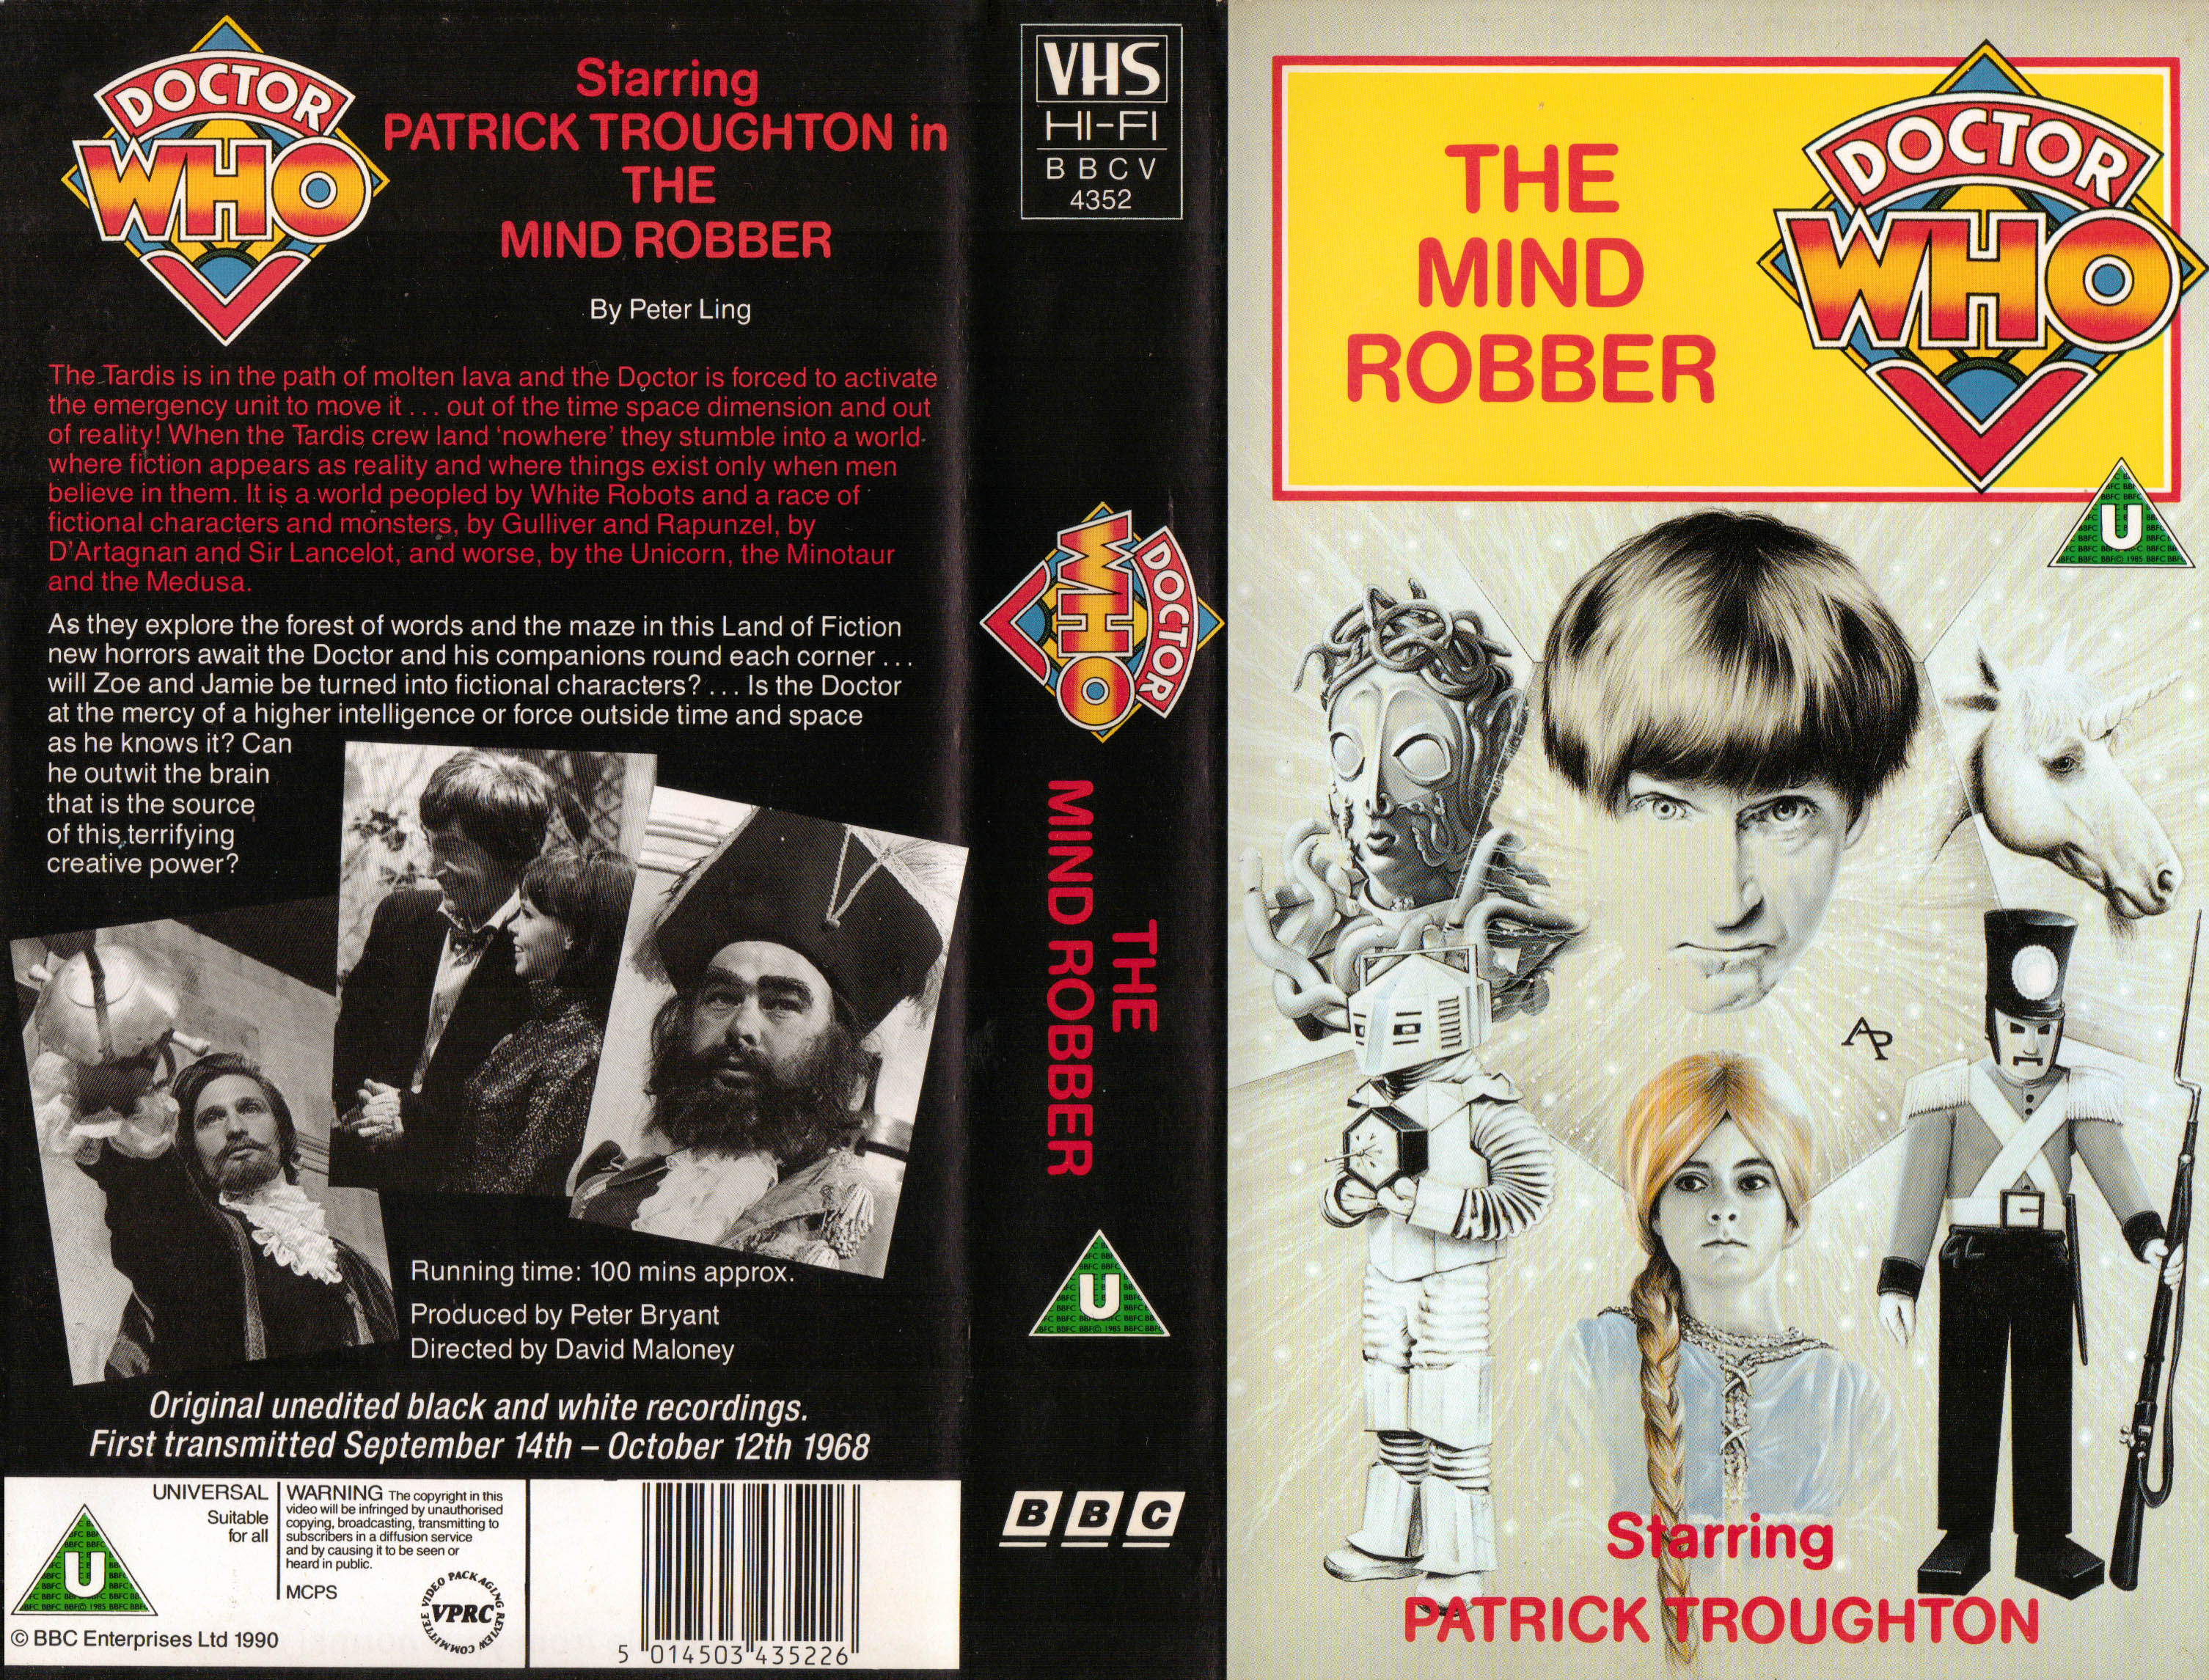 The Mind Robber VHS